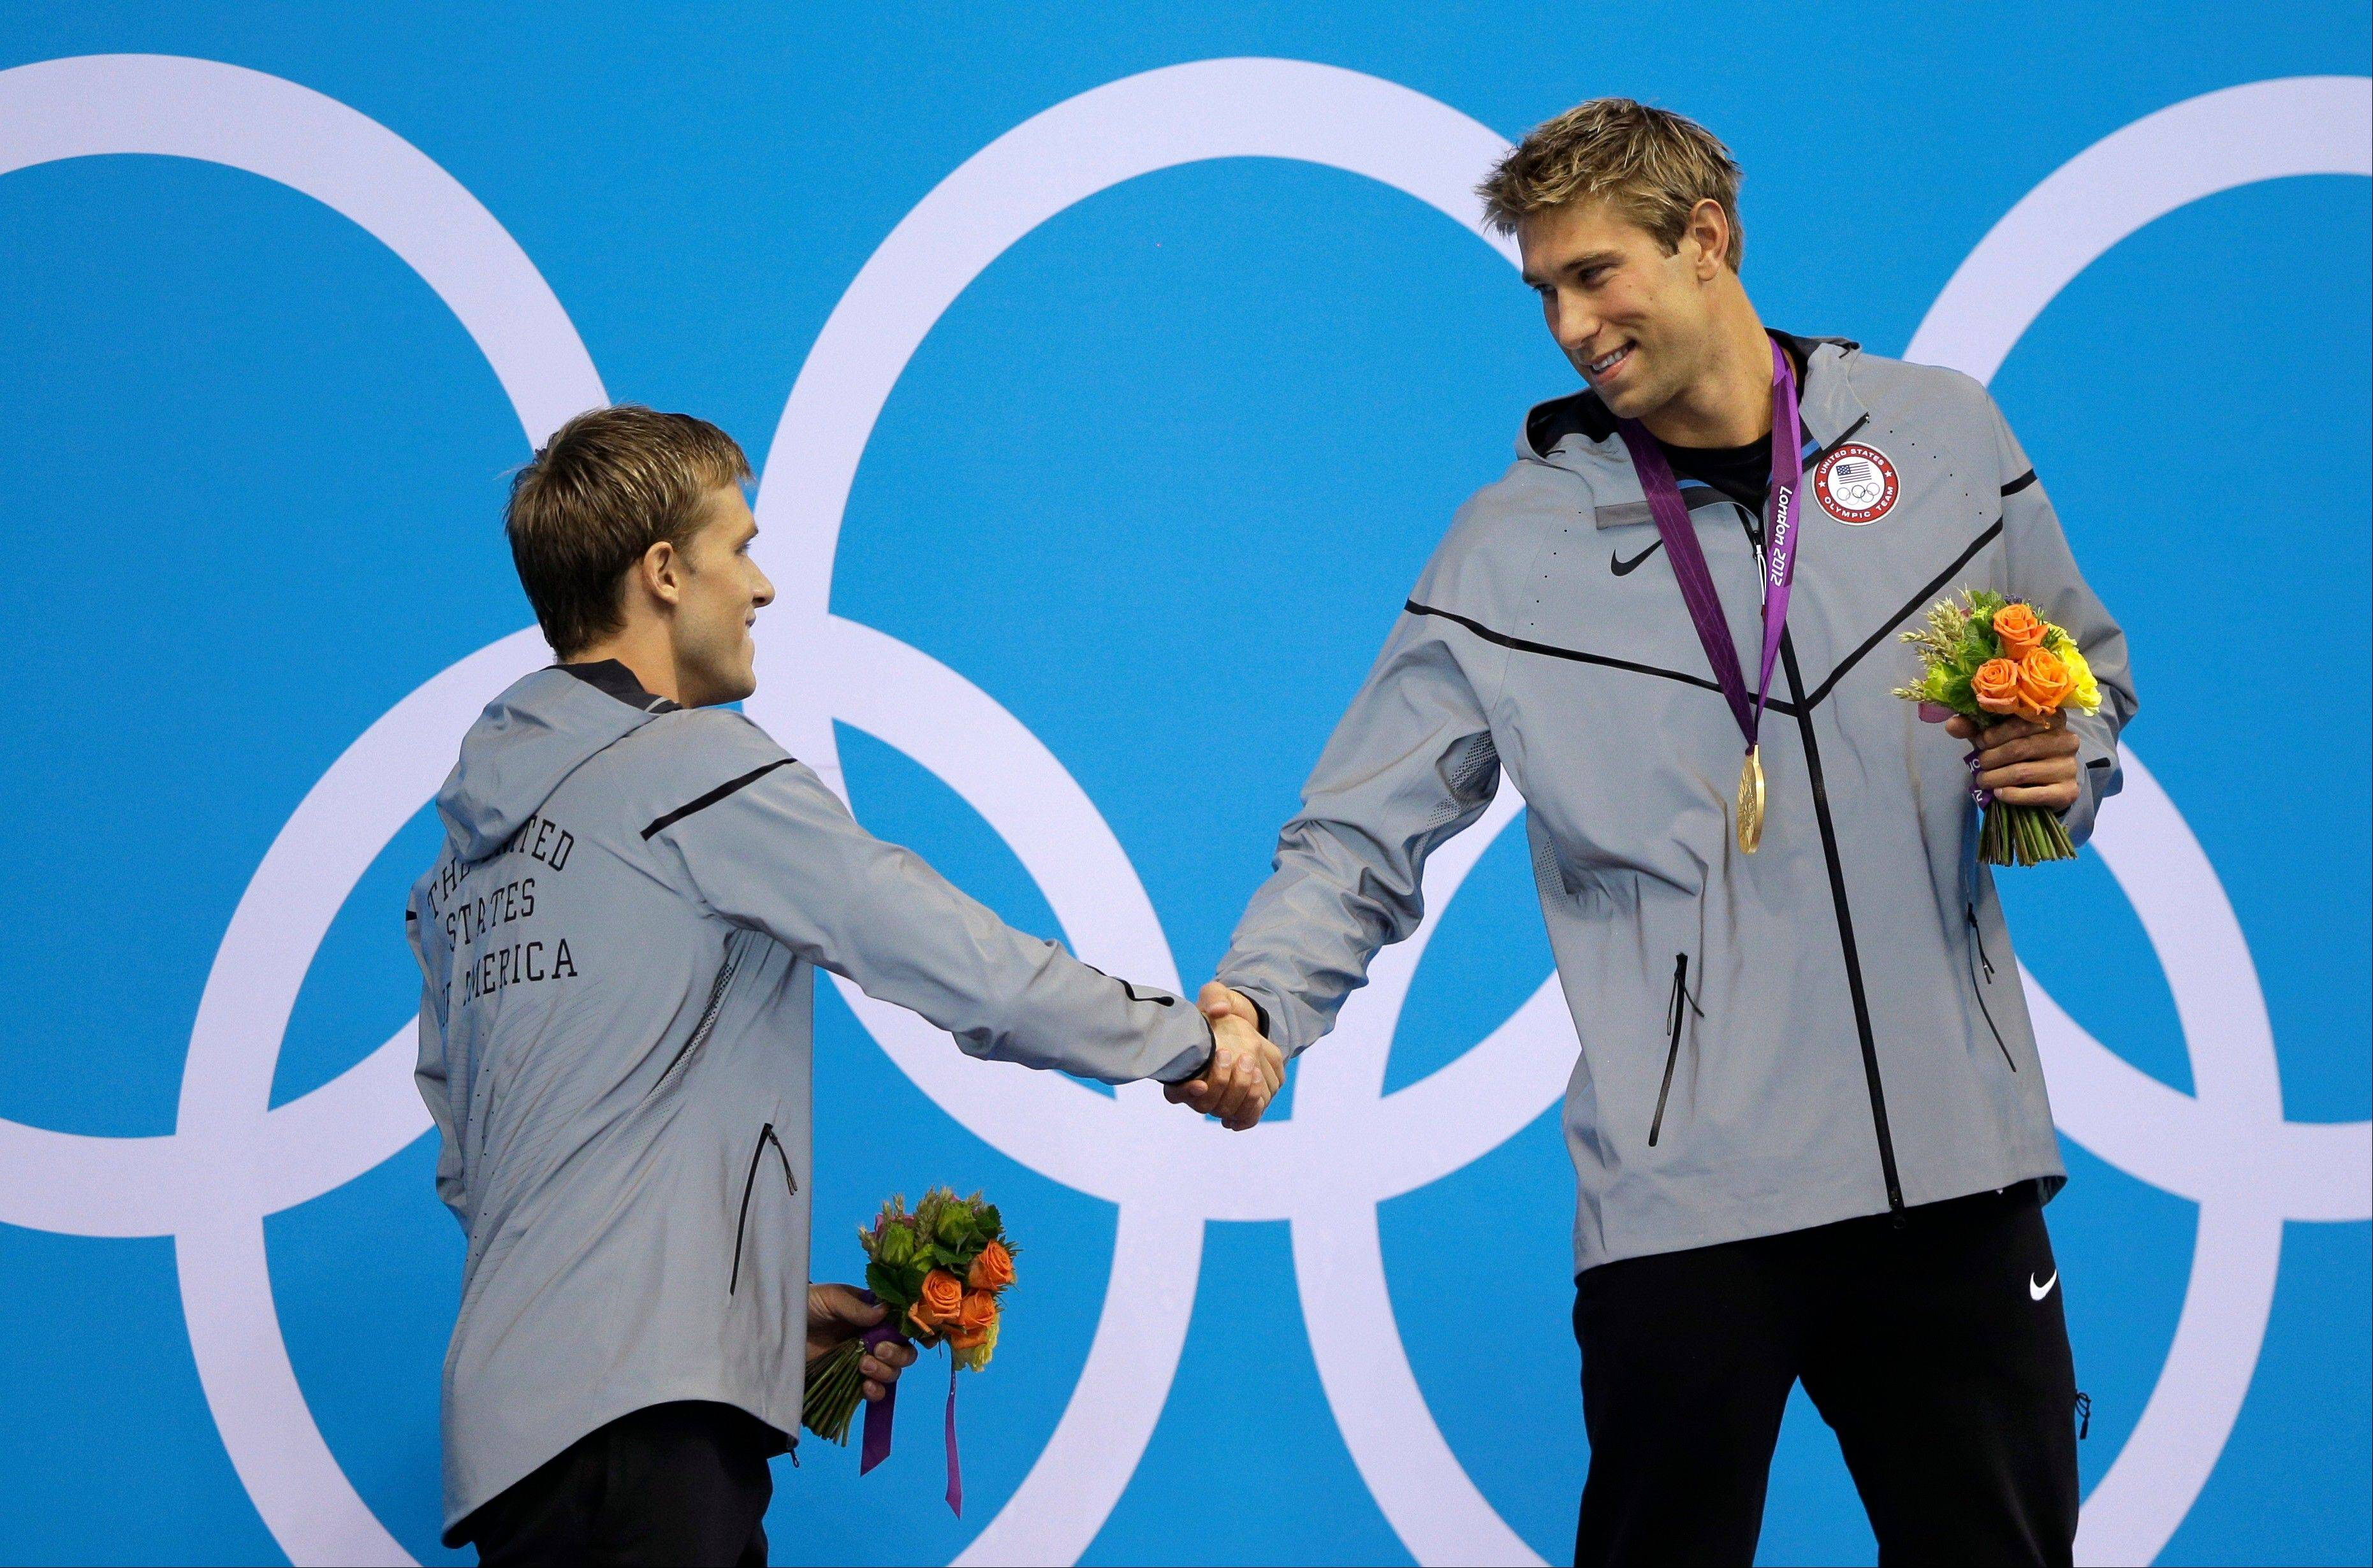 United States silver medalist Nick Thoman, left, shakes hands with gold medalist Matthew Grevers, right, during a ceremony following their wins in the men's 100-meter backstroke swimming final at the Aquatics Centre in the Olympic Park during the 2012 Summer Olympics in London, Monday, July 30, 2012.